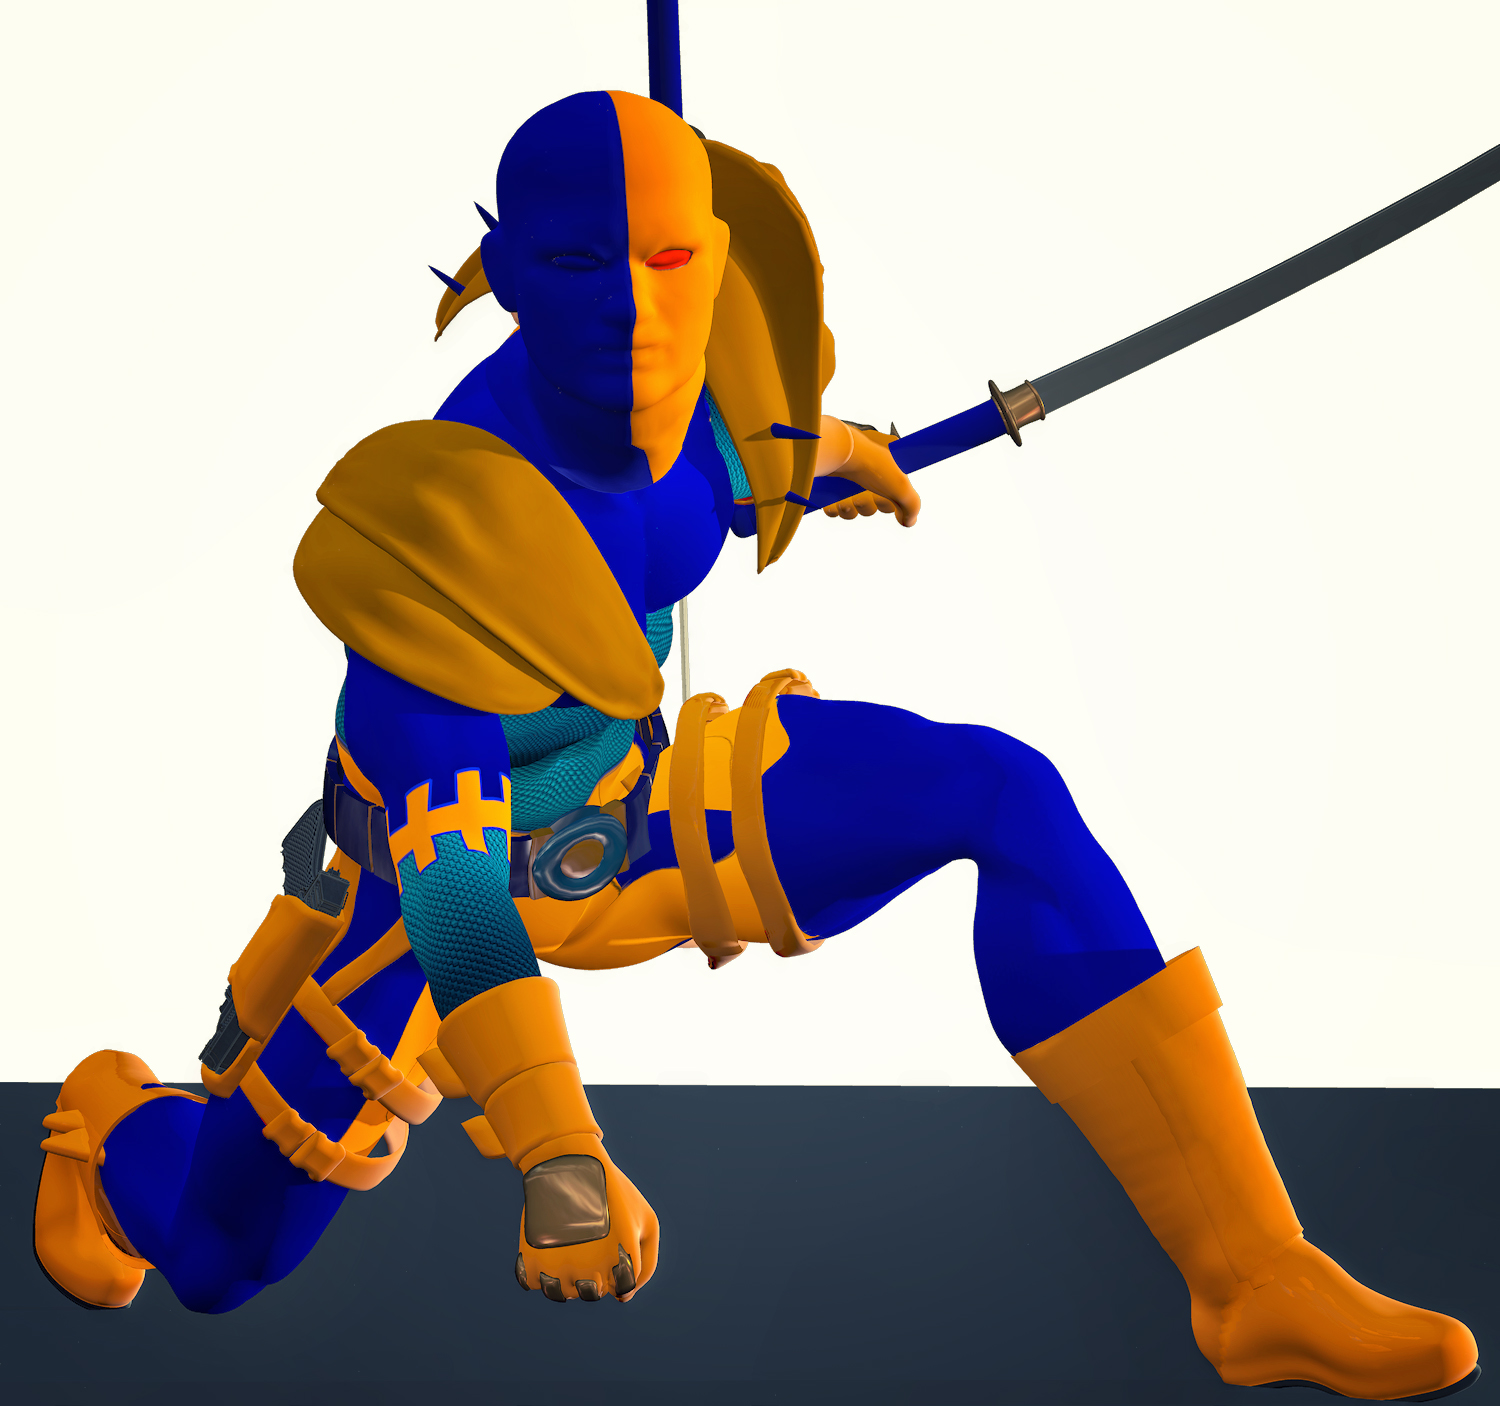 Deathstroke second skin textures for M4